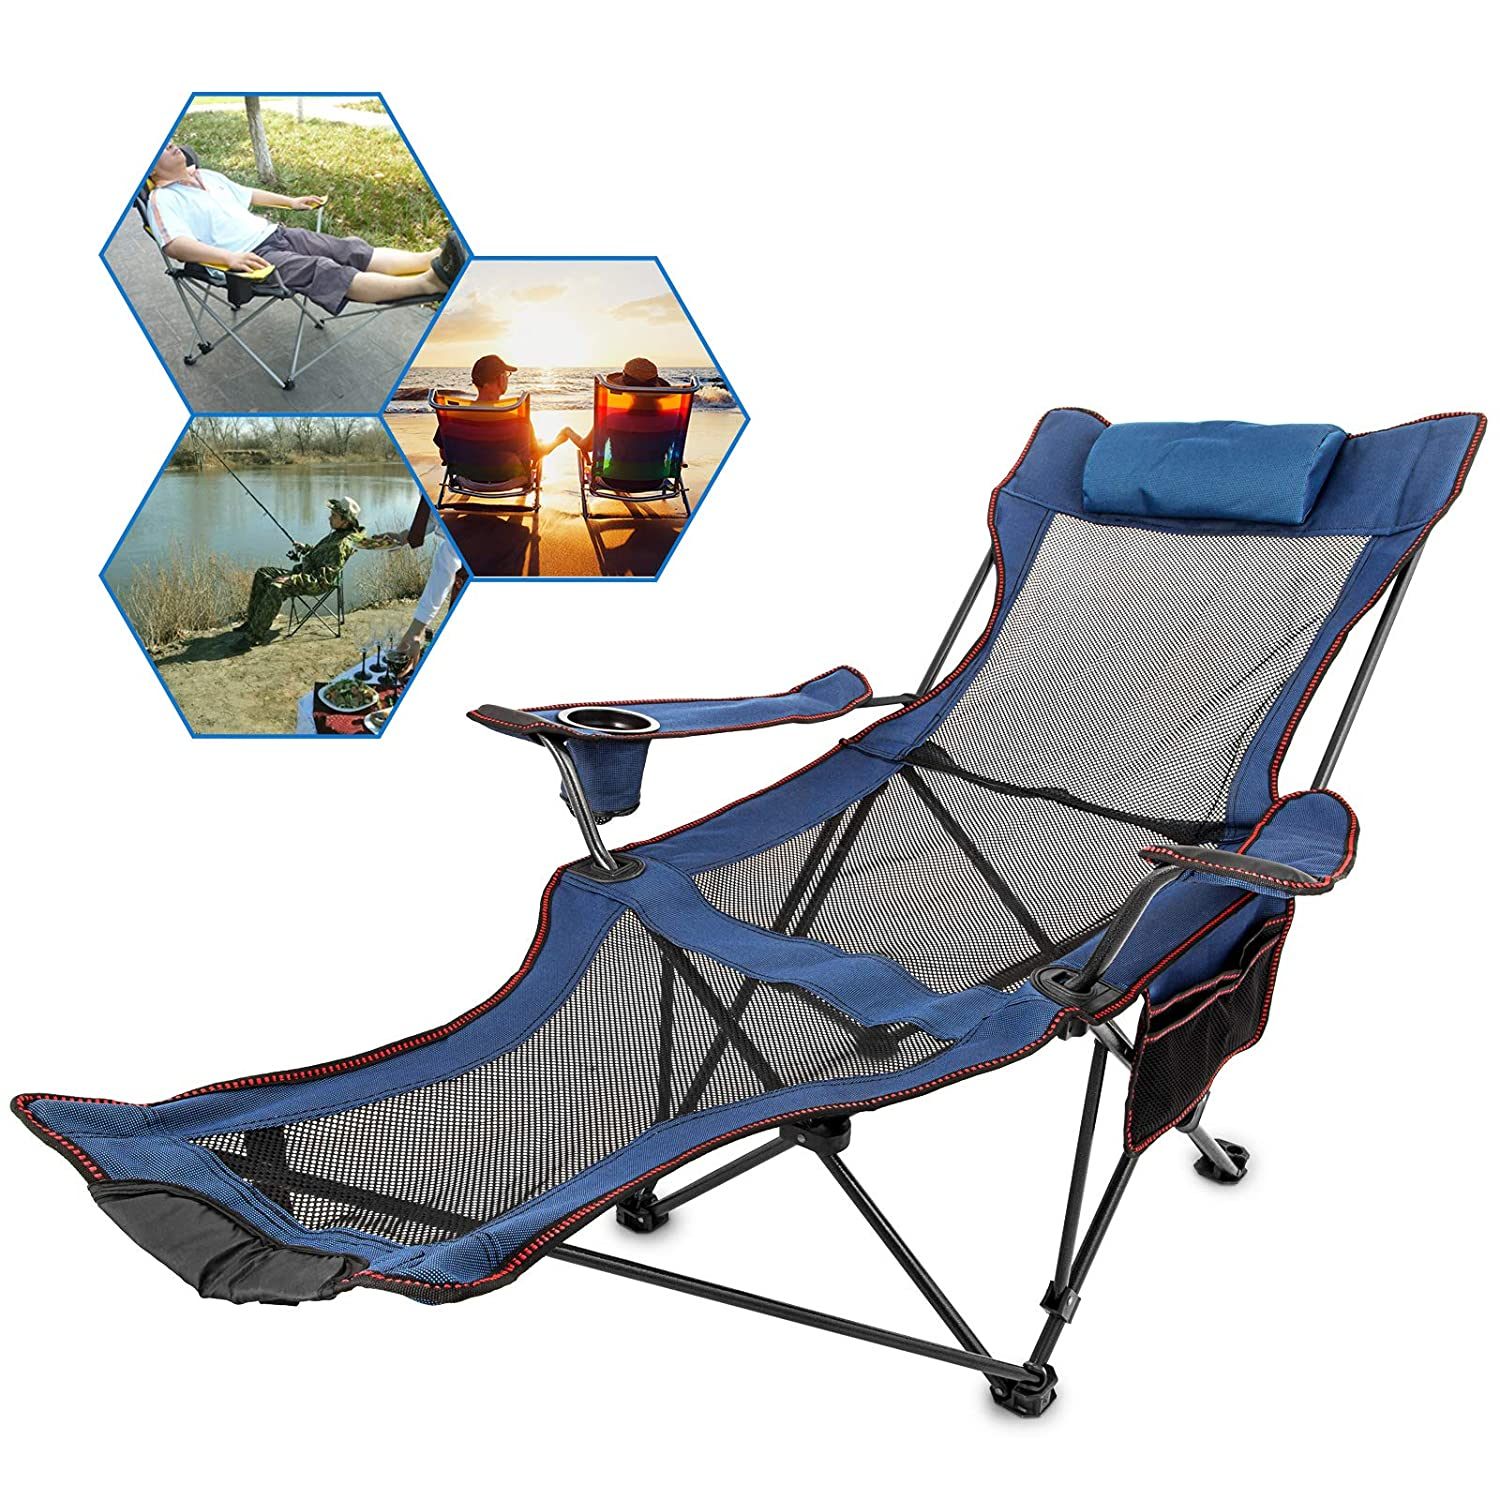 Incredible Happybuy Blue Folding Camp Chair With Footrest Mesh Lounge Chair With Cup Holder And Storage Bag Reclining Folding Camp Chair For Camping Fishing And Creativecarmelina Interior Chair Design Creativecarmelinacom